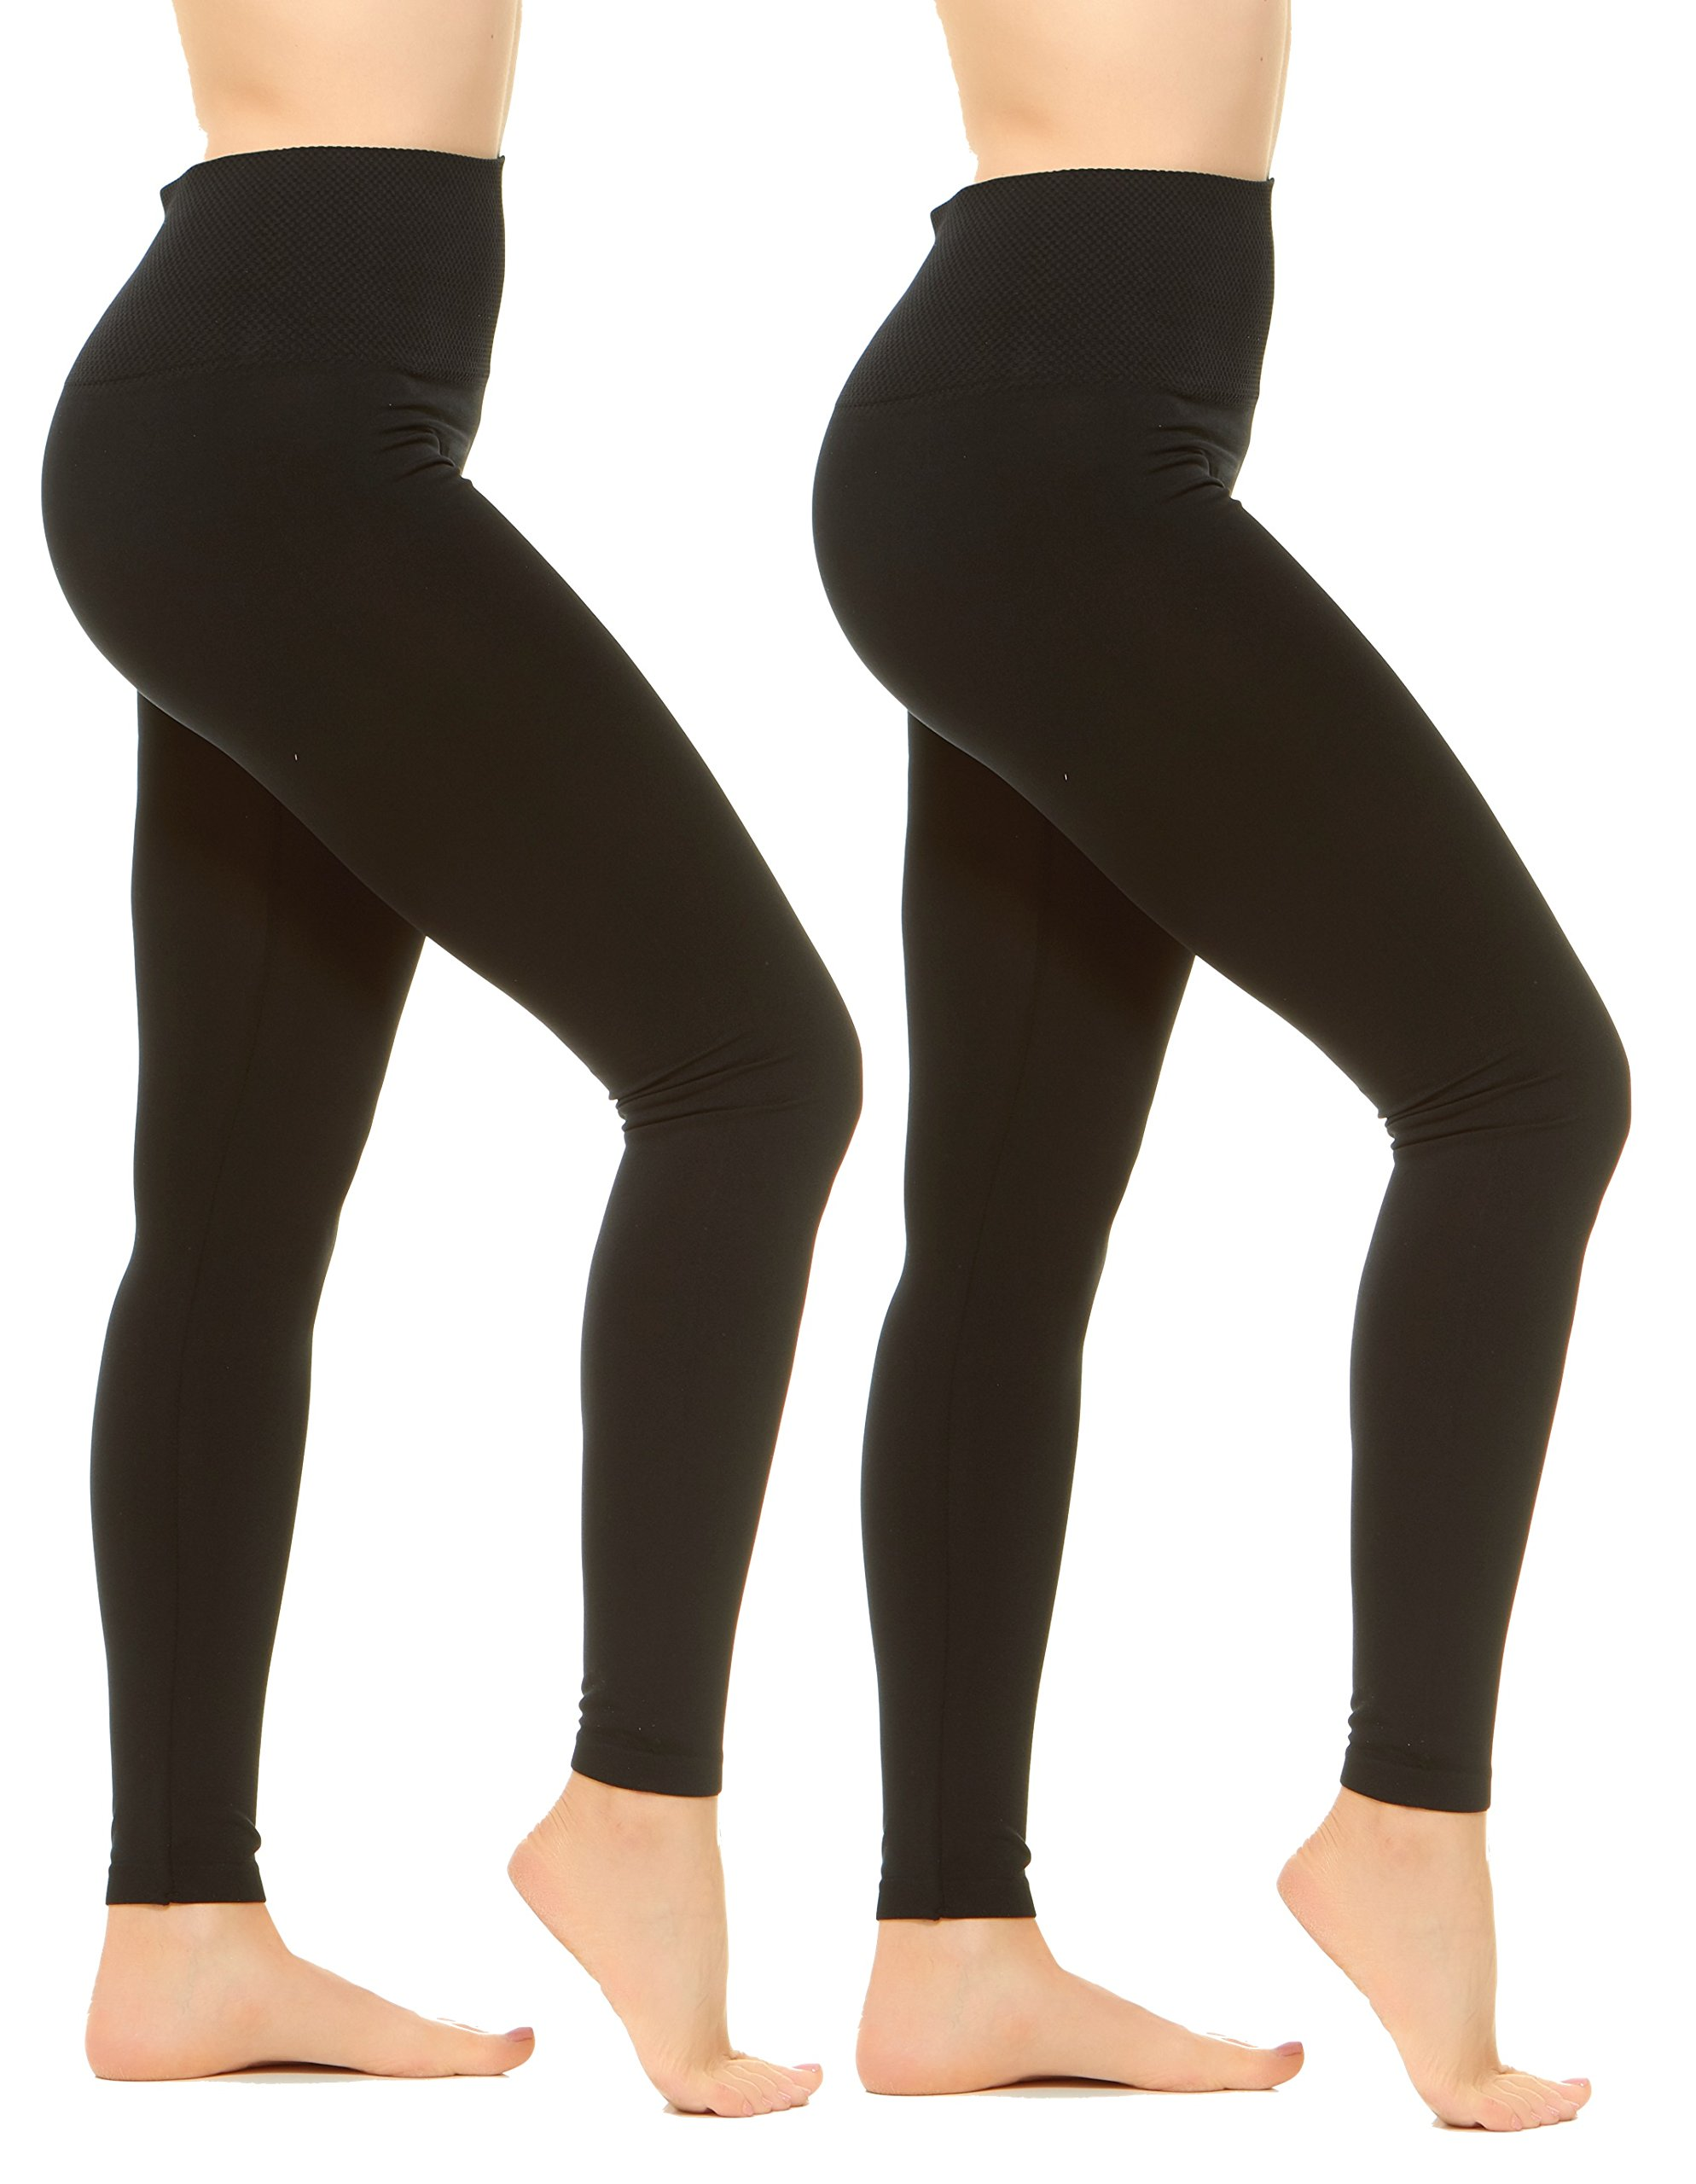 Unique Styles Womens Leggings Active Tights Everyday High Waist Pants Packs of 4 (2-PK: Black, Black, One Size)